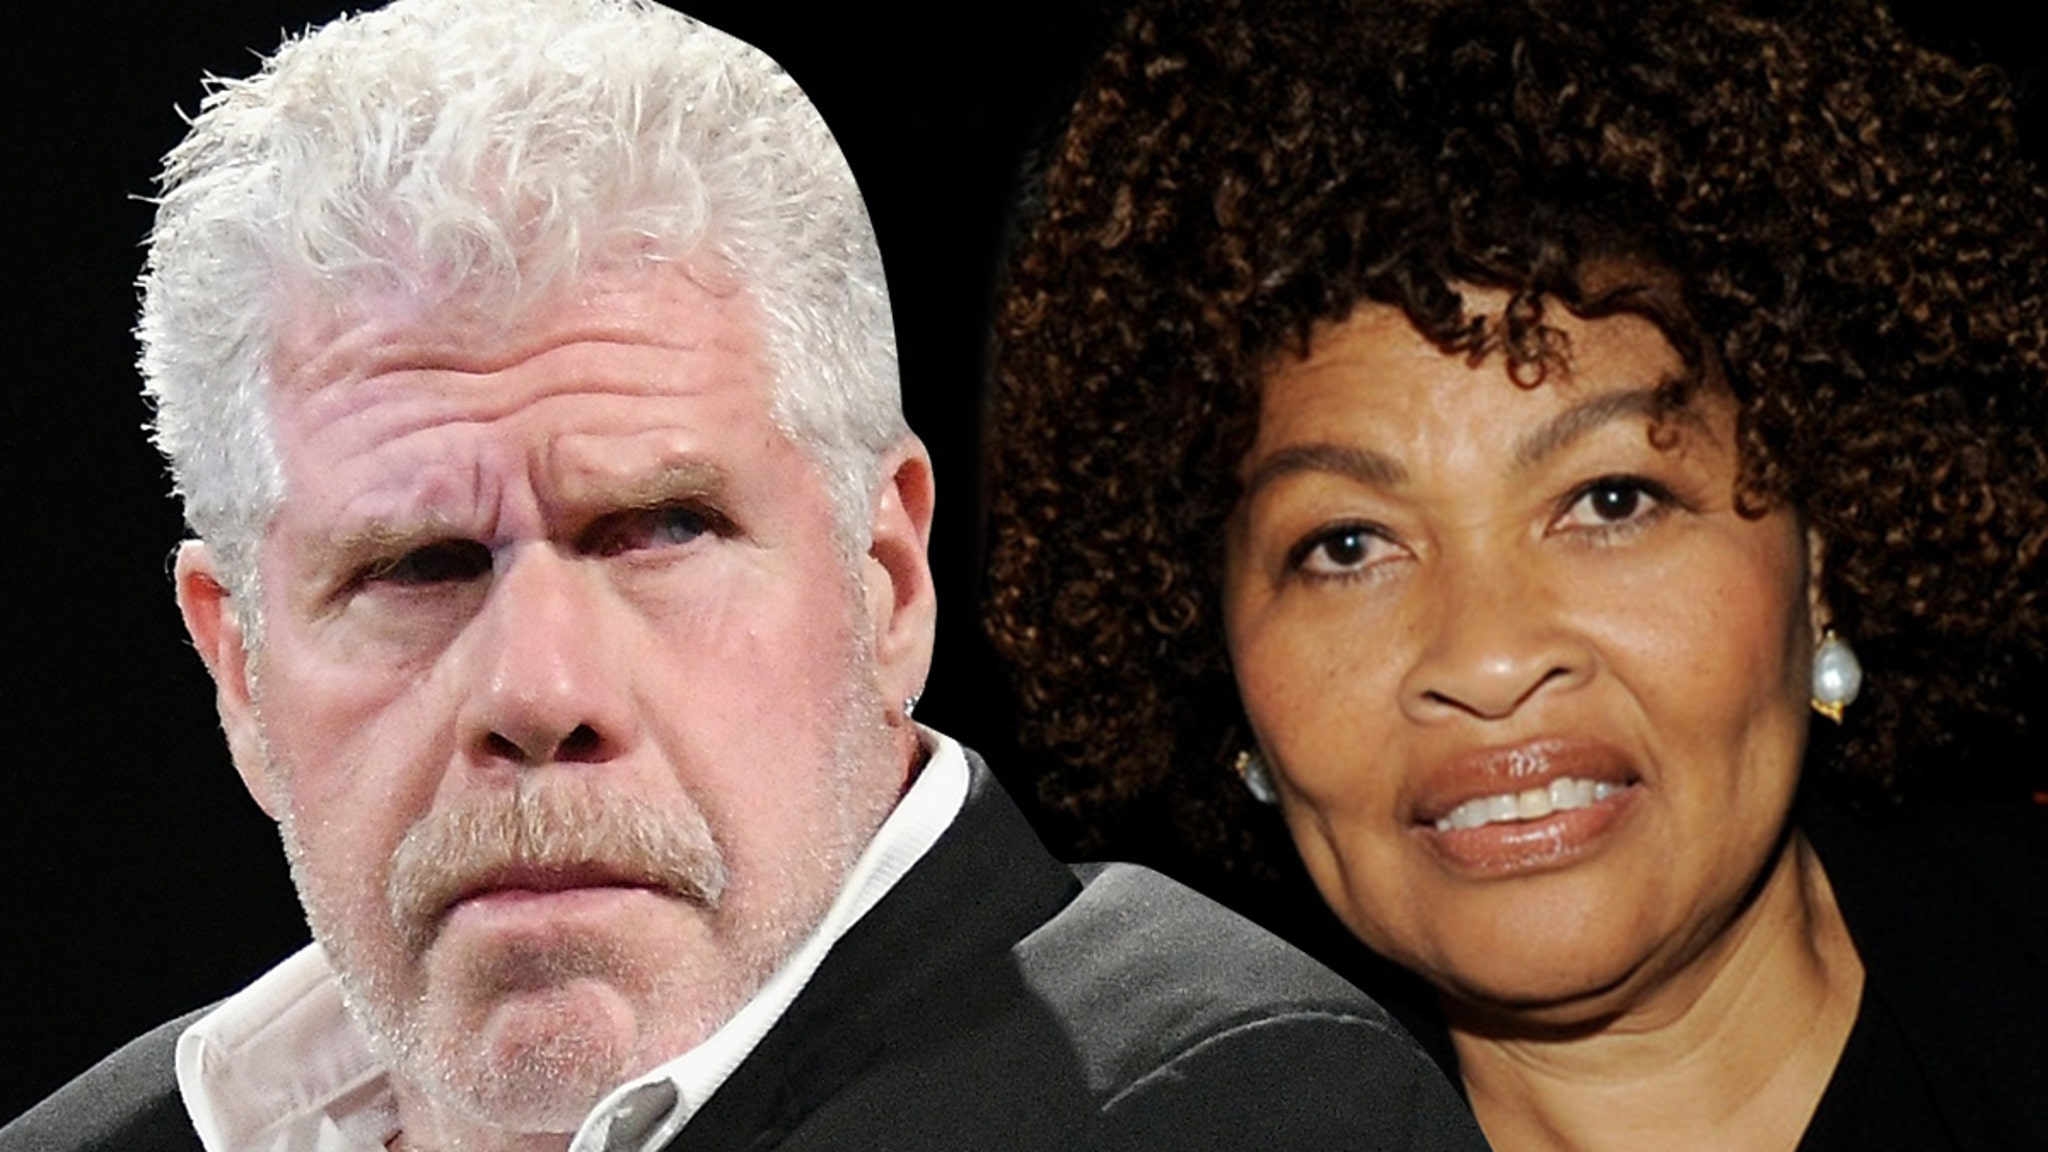 Ron Perlman Asks Judge to Declare Him Single, Wants to Remarry